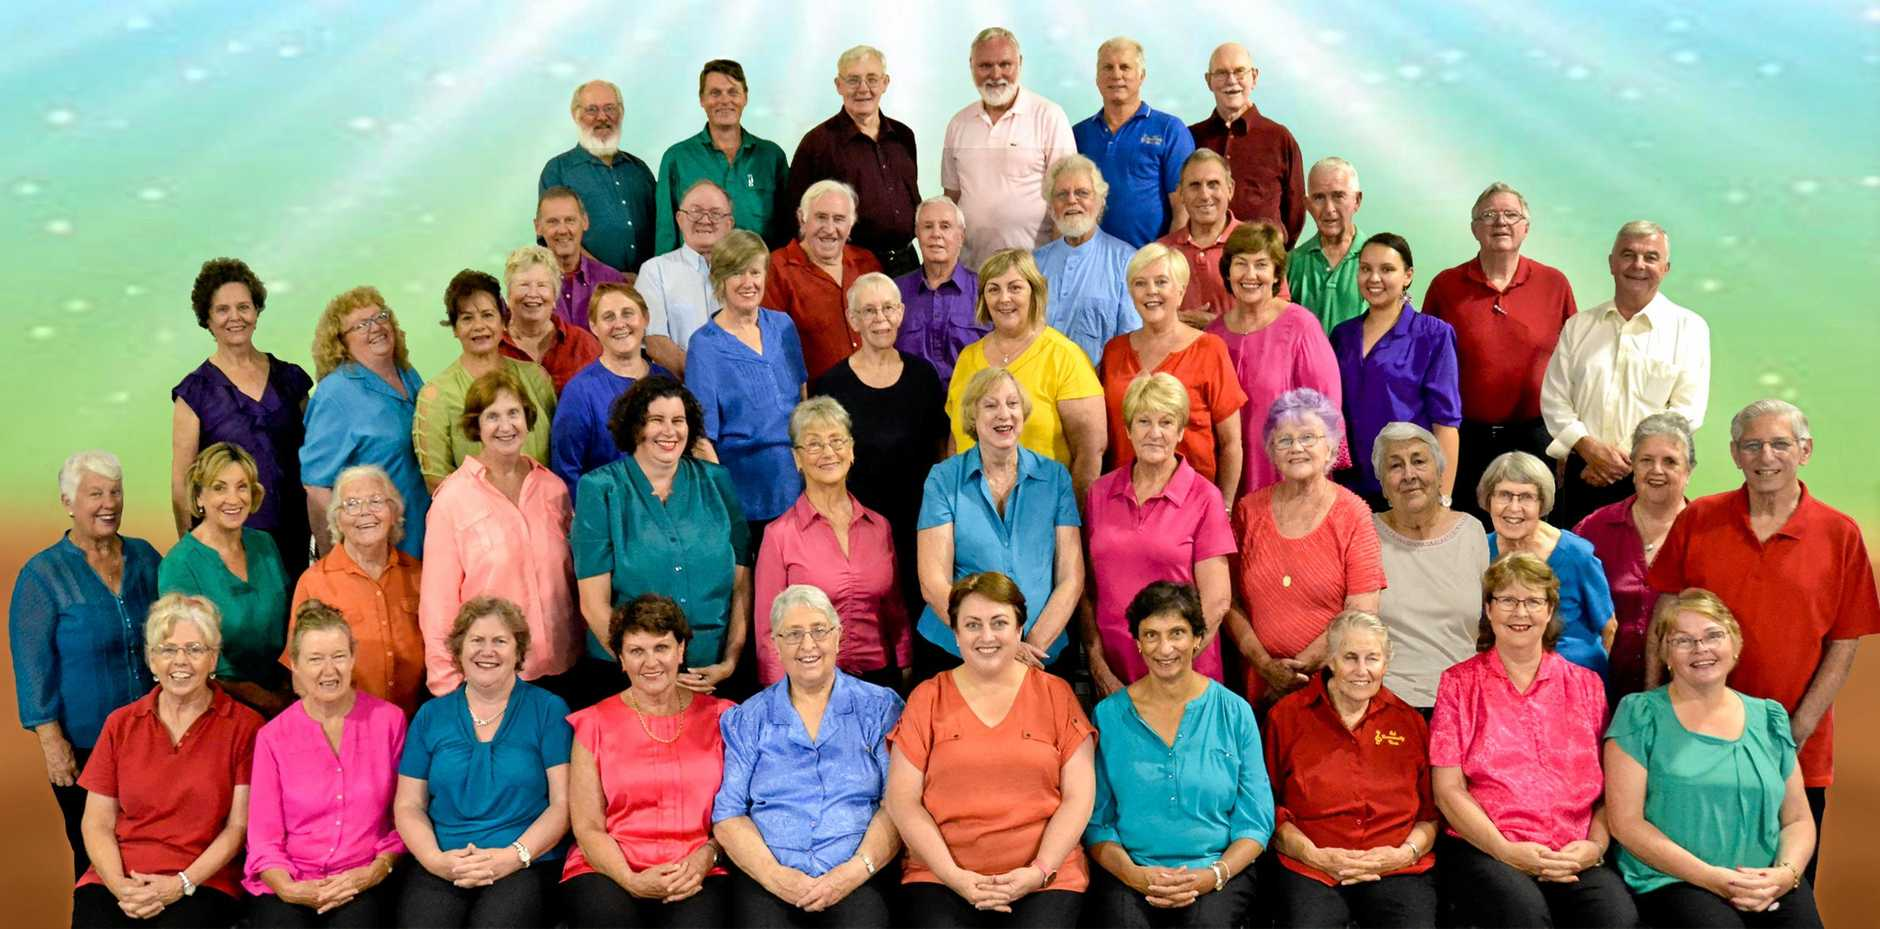 CONGRATULATIONS: The Esk Community Choir kicks off celebrations with an Opening Concert.